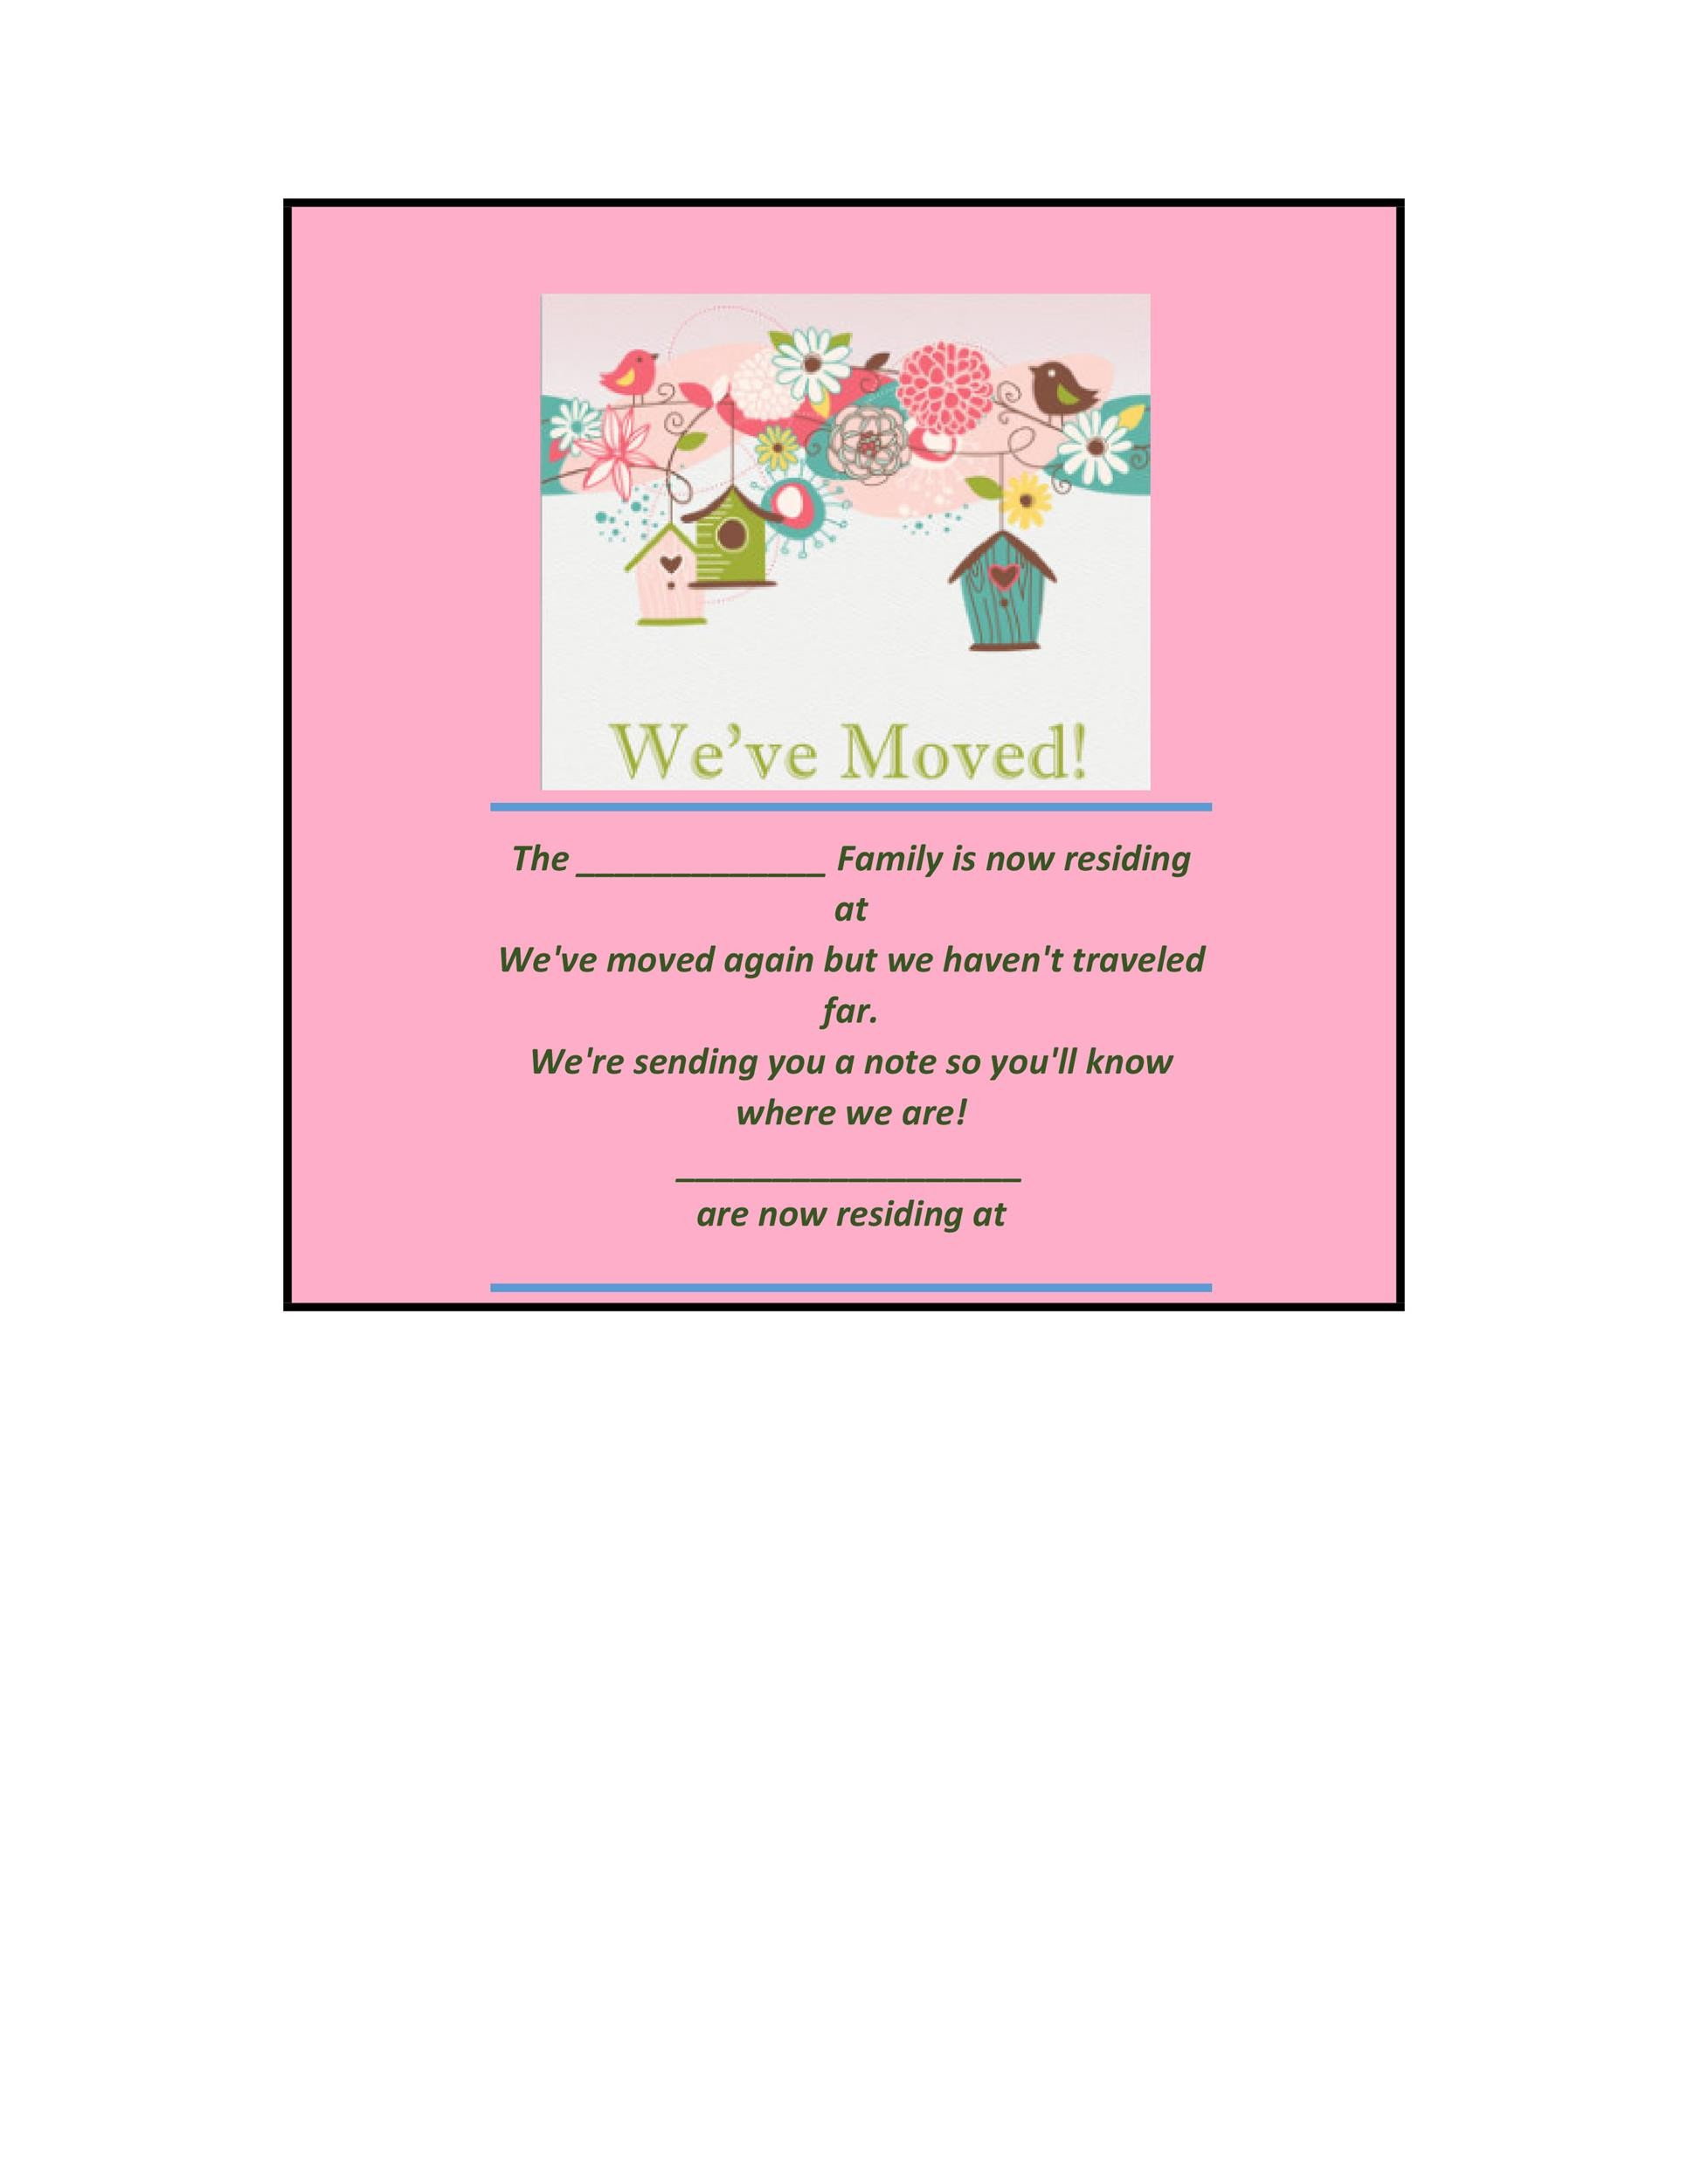 graphic relating to Printable Housewarming Invitations titled 40+ No cost Printable Housewarming Get together Invitation Templates